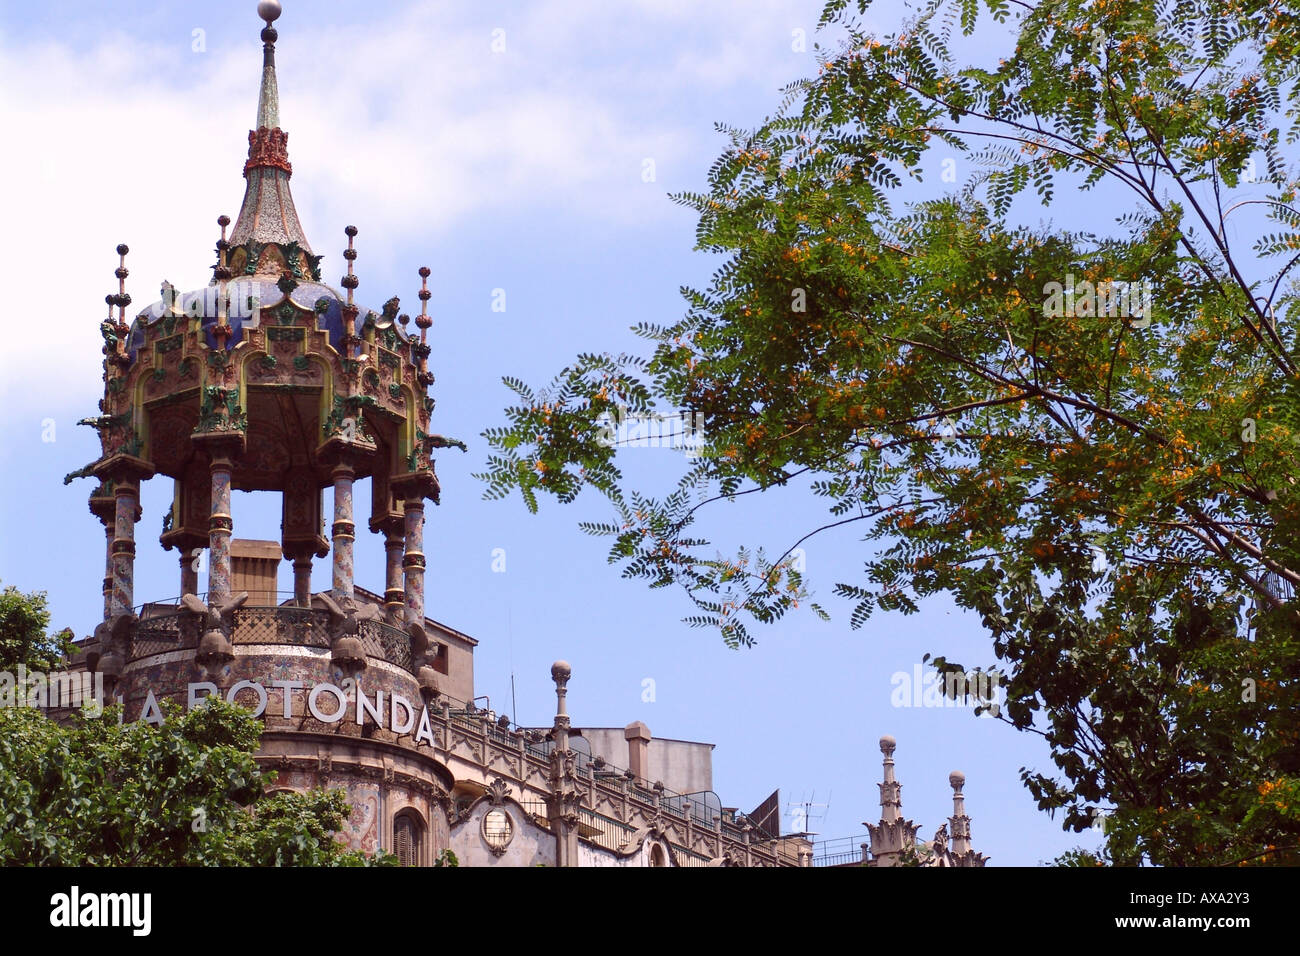 John kennedy stock photos john kennedy stock images alamy - Placa kennedy barcelona ...